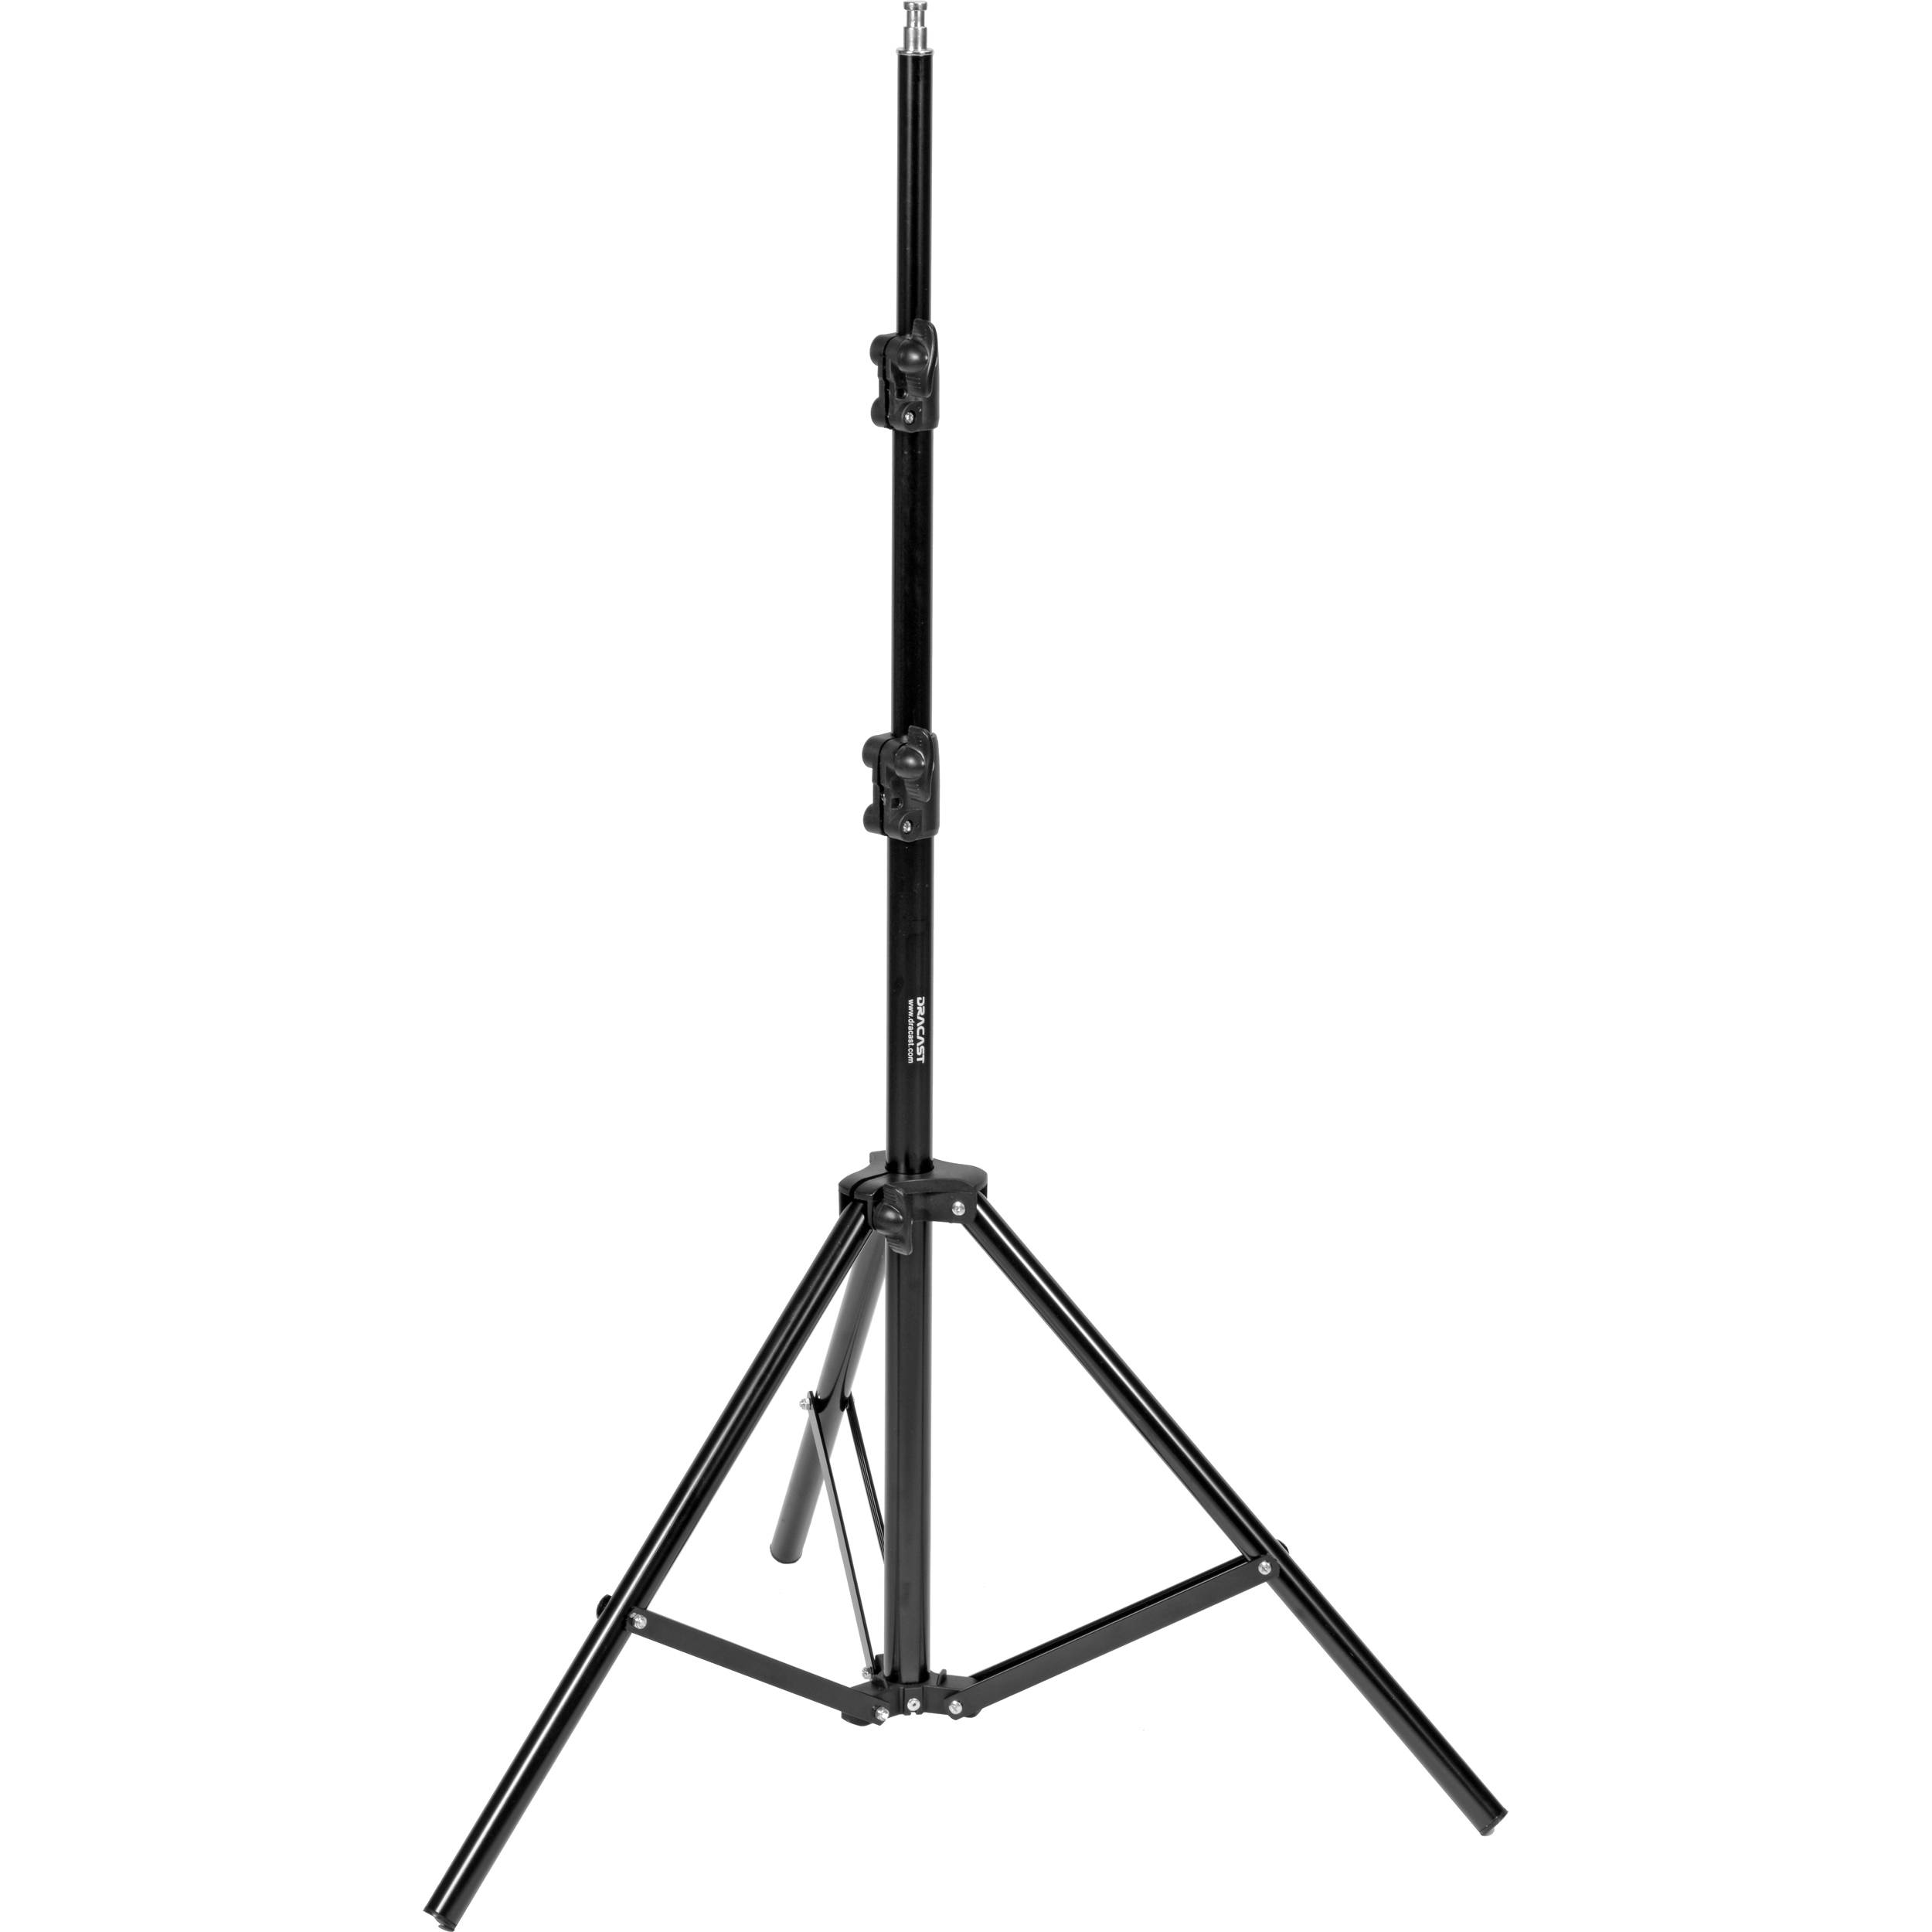 Dracast DLS-805 Spring-Cushioned Light Stand (6') DR